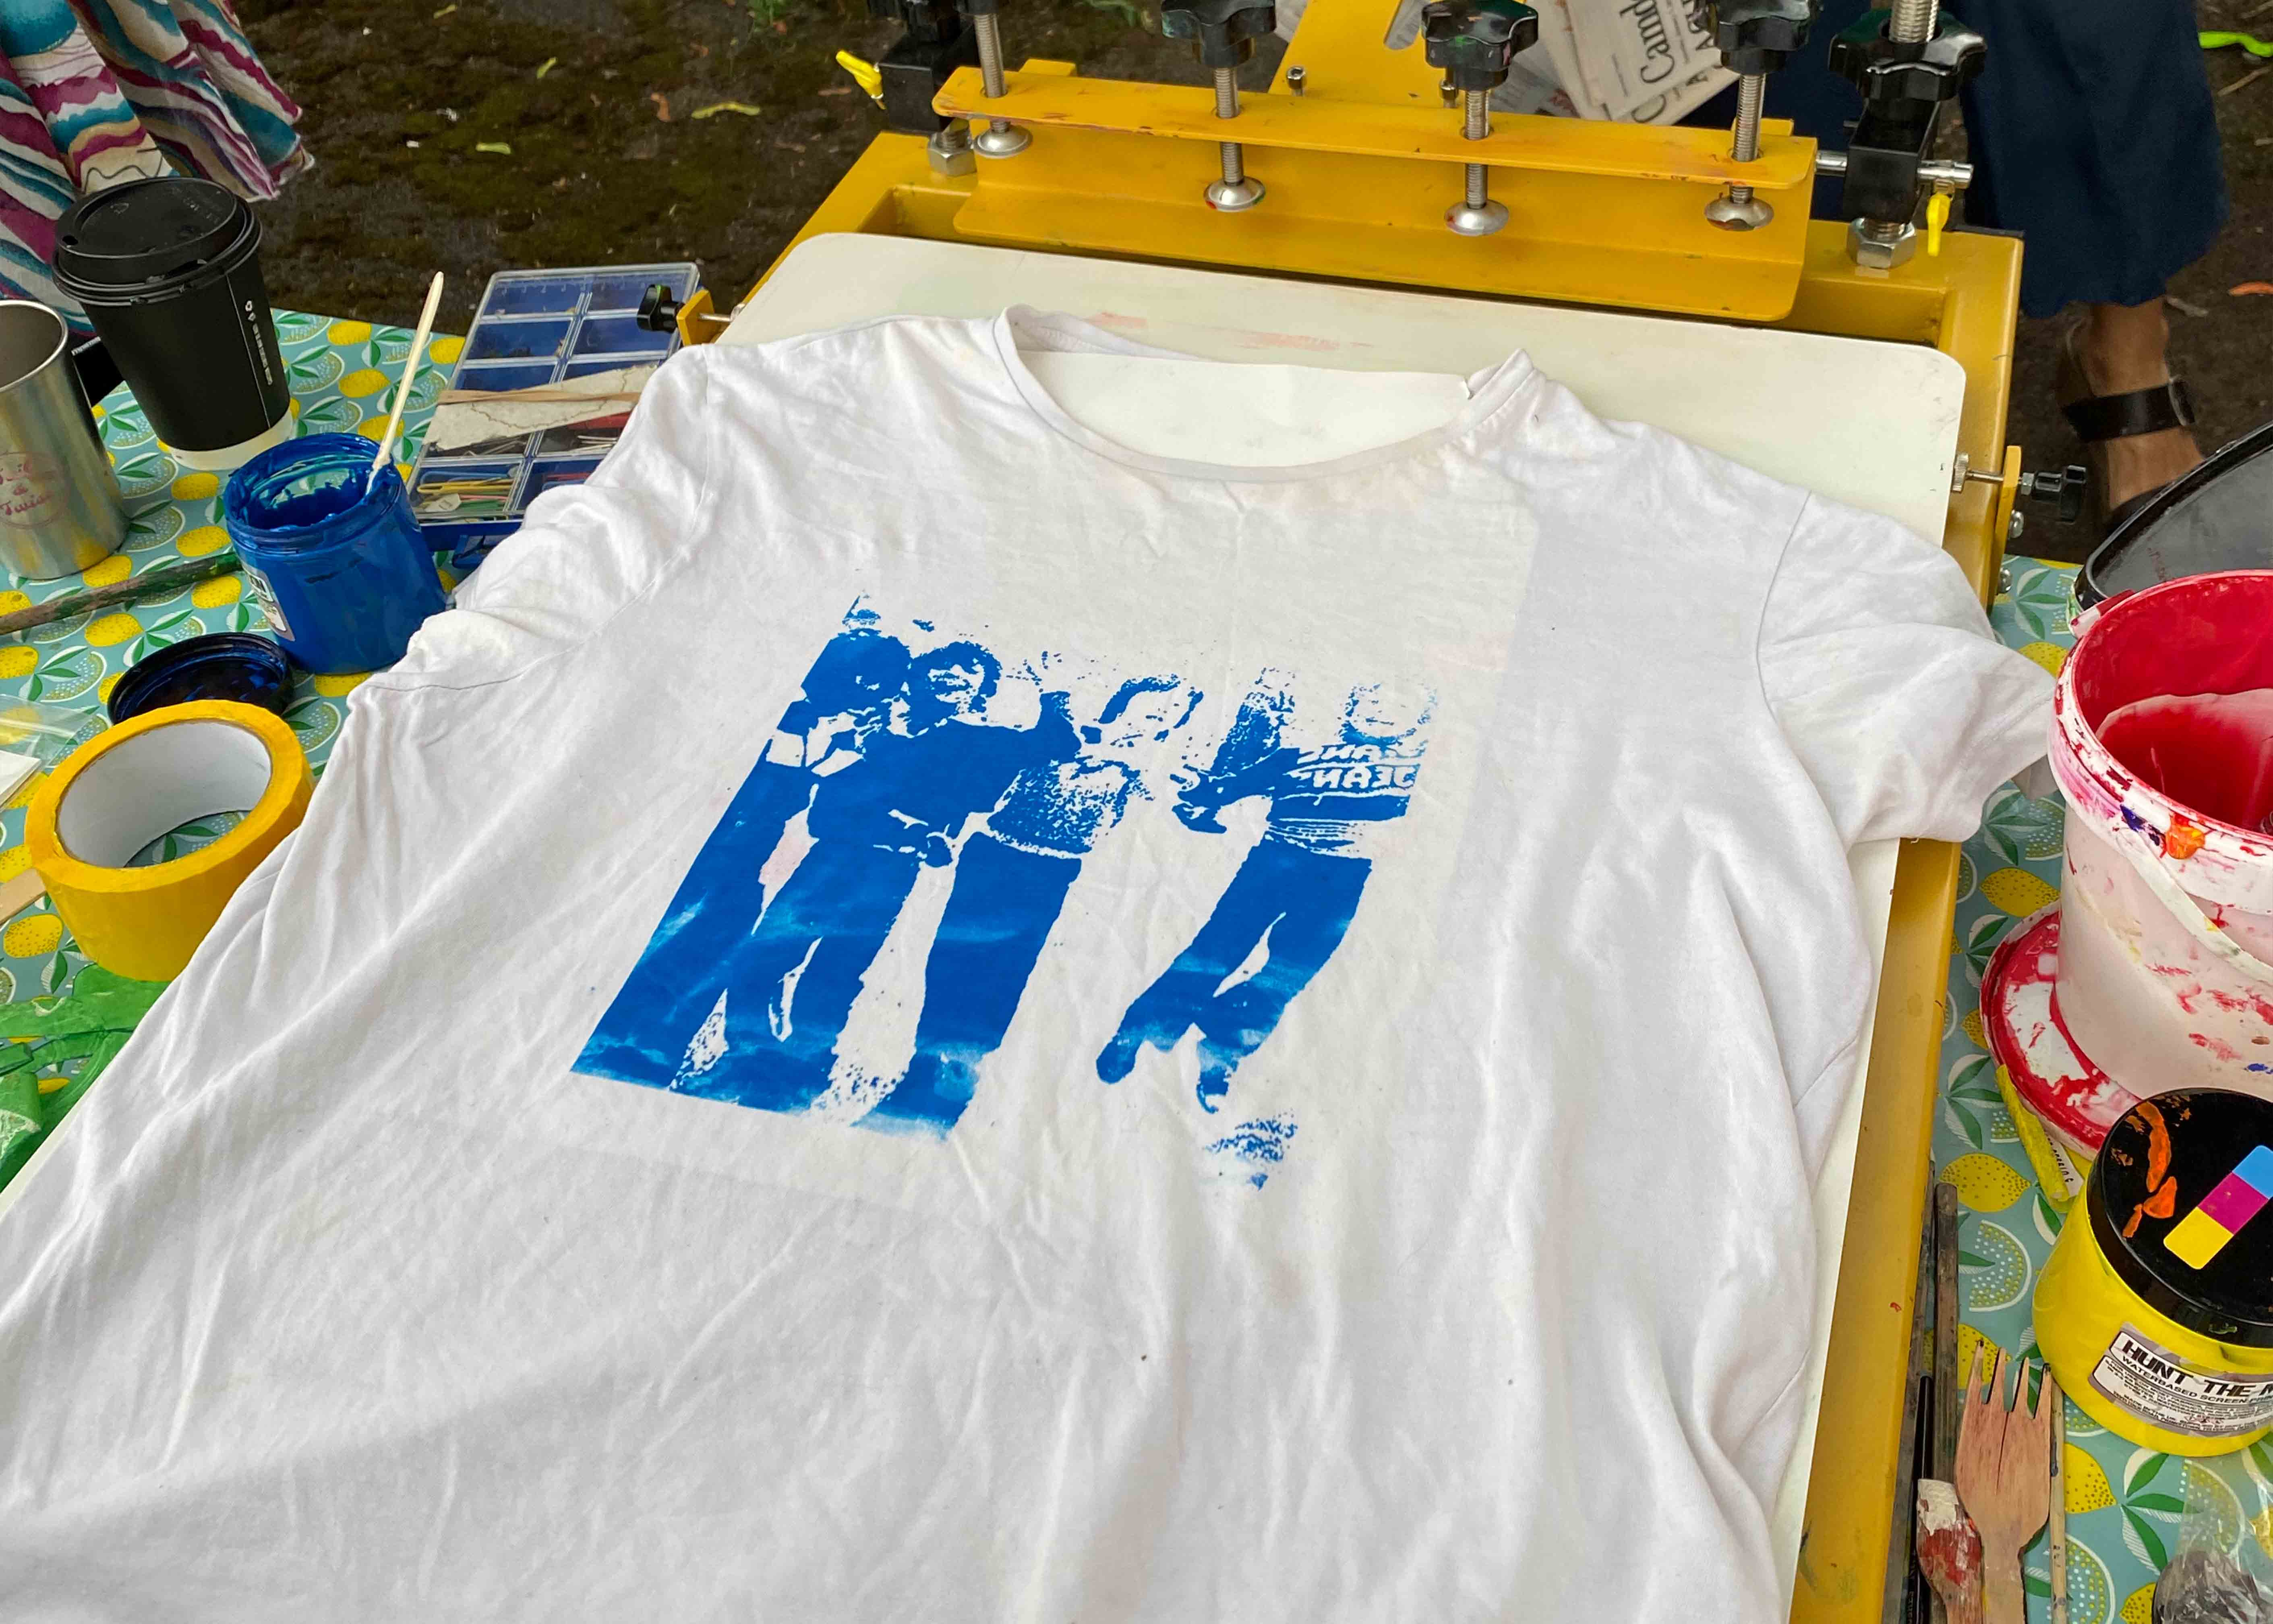 A t-shirt being screen printed